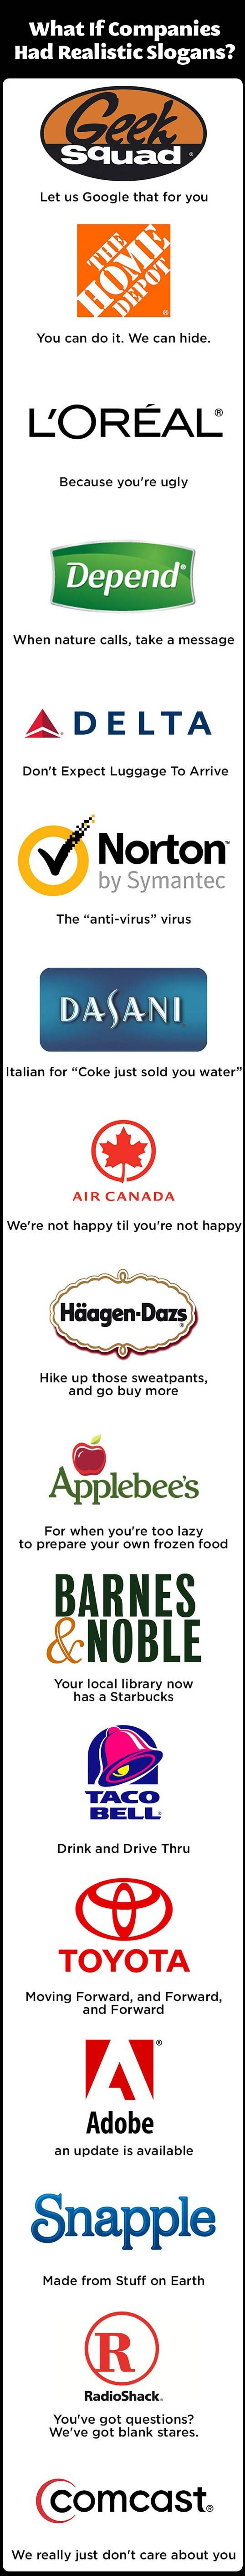 Best 25+ Slogans for companies ideas on Pinterest | Skittles ...